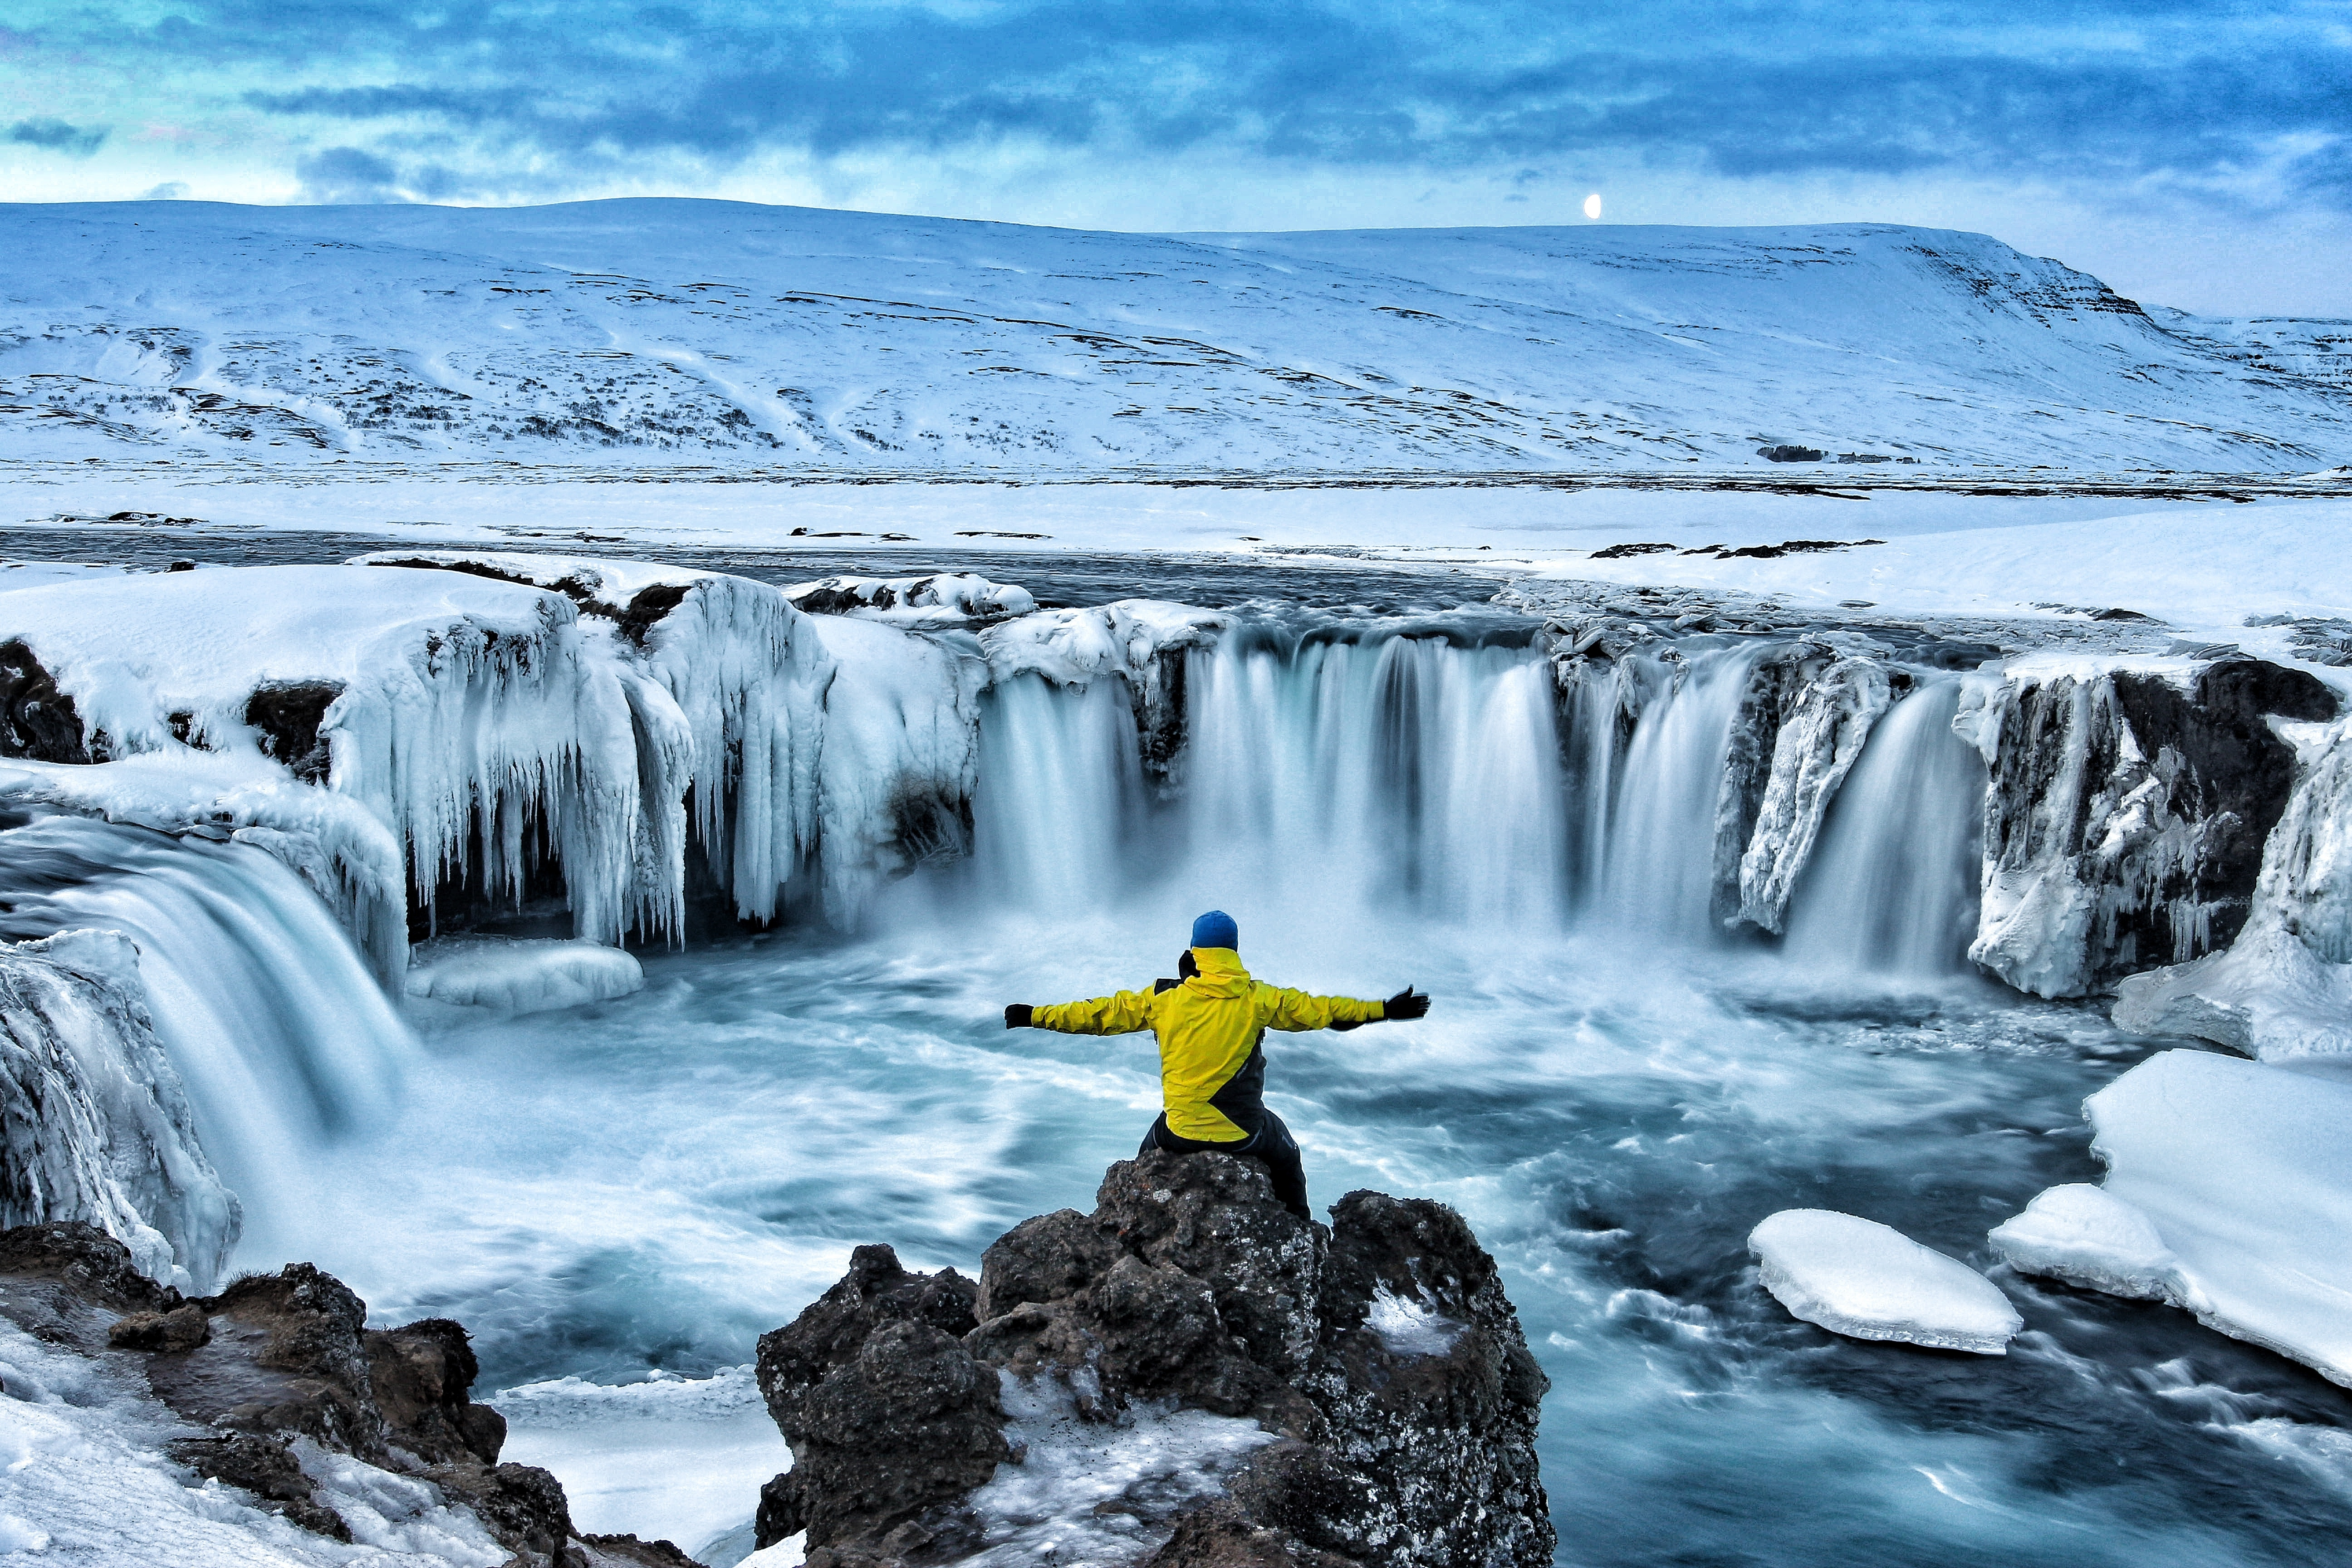 Icelandic Tour Operators Put Carbon Neutrality in the Forefront